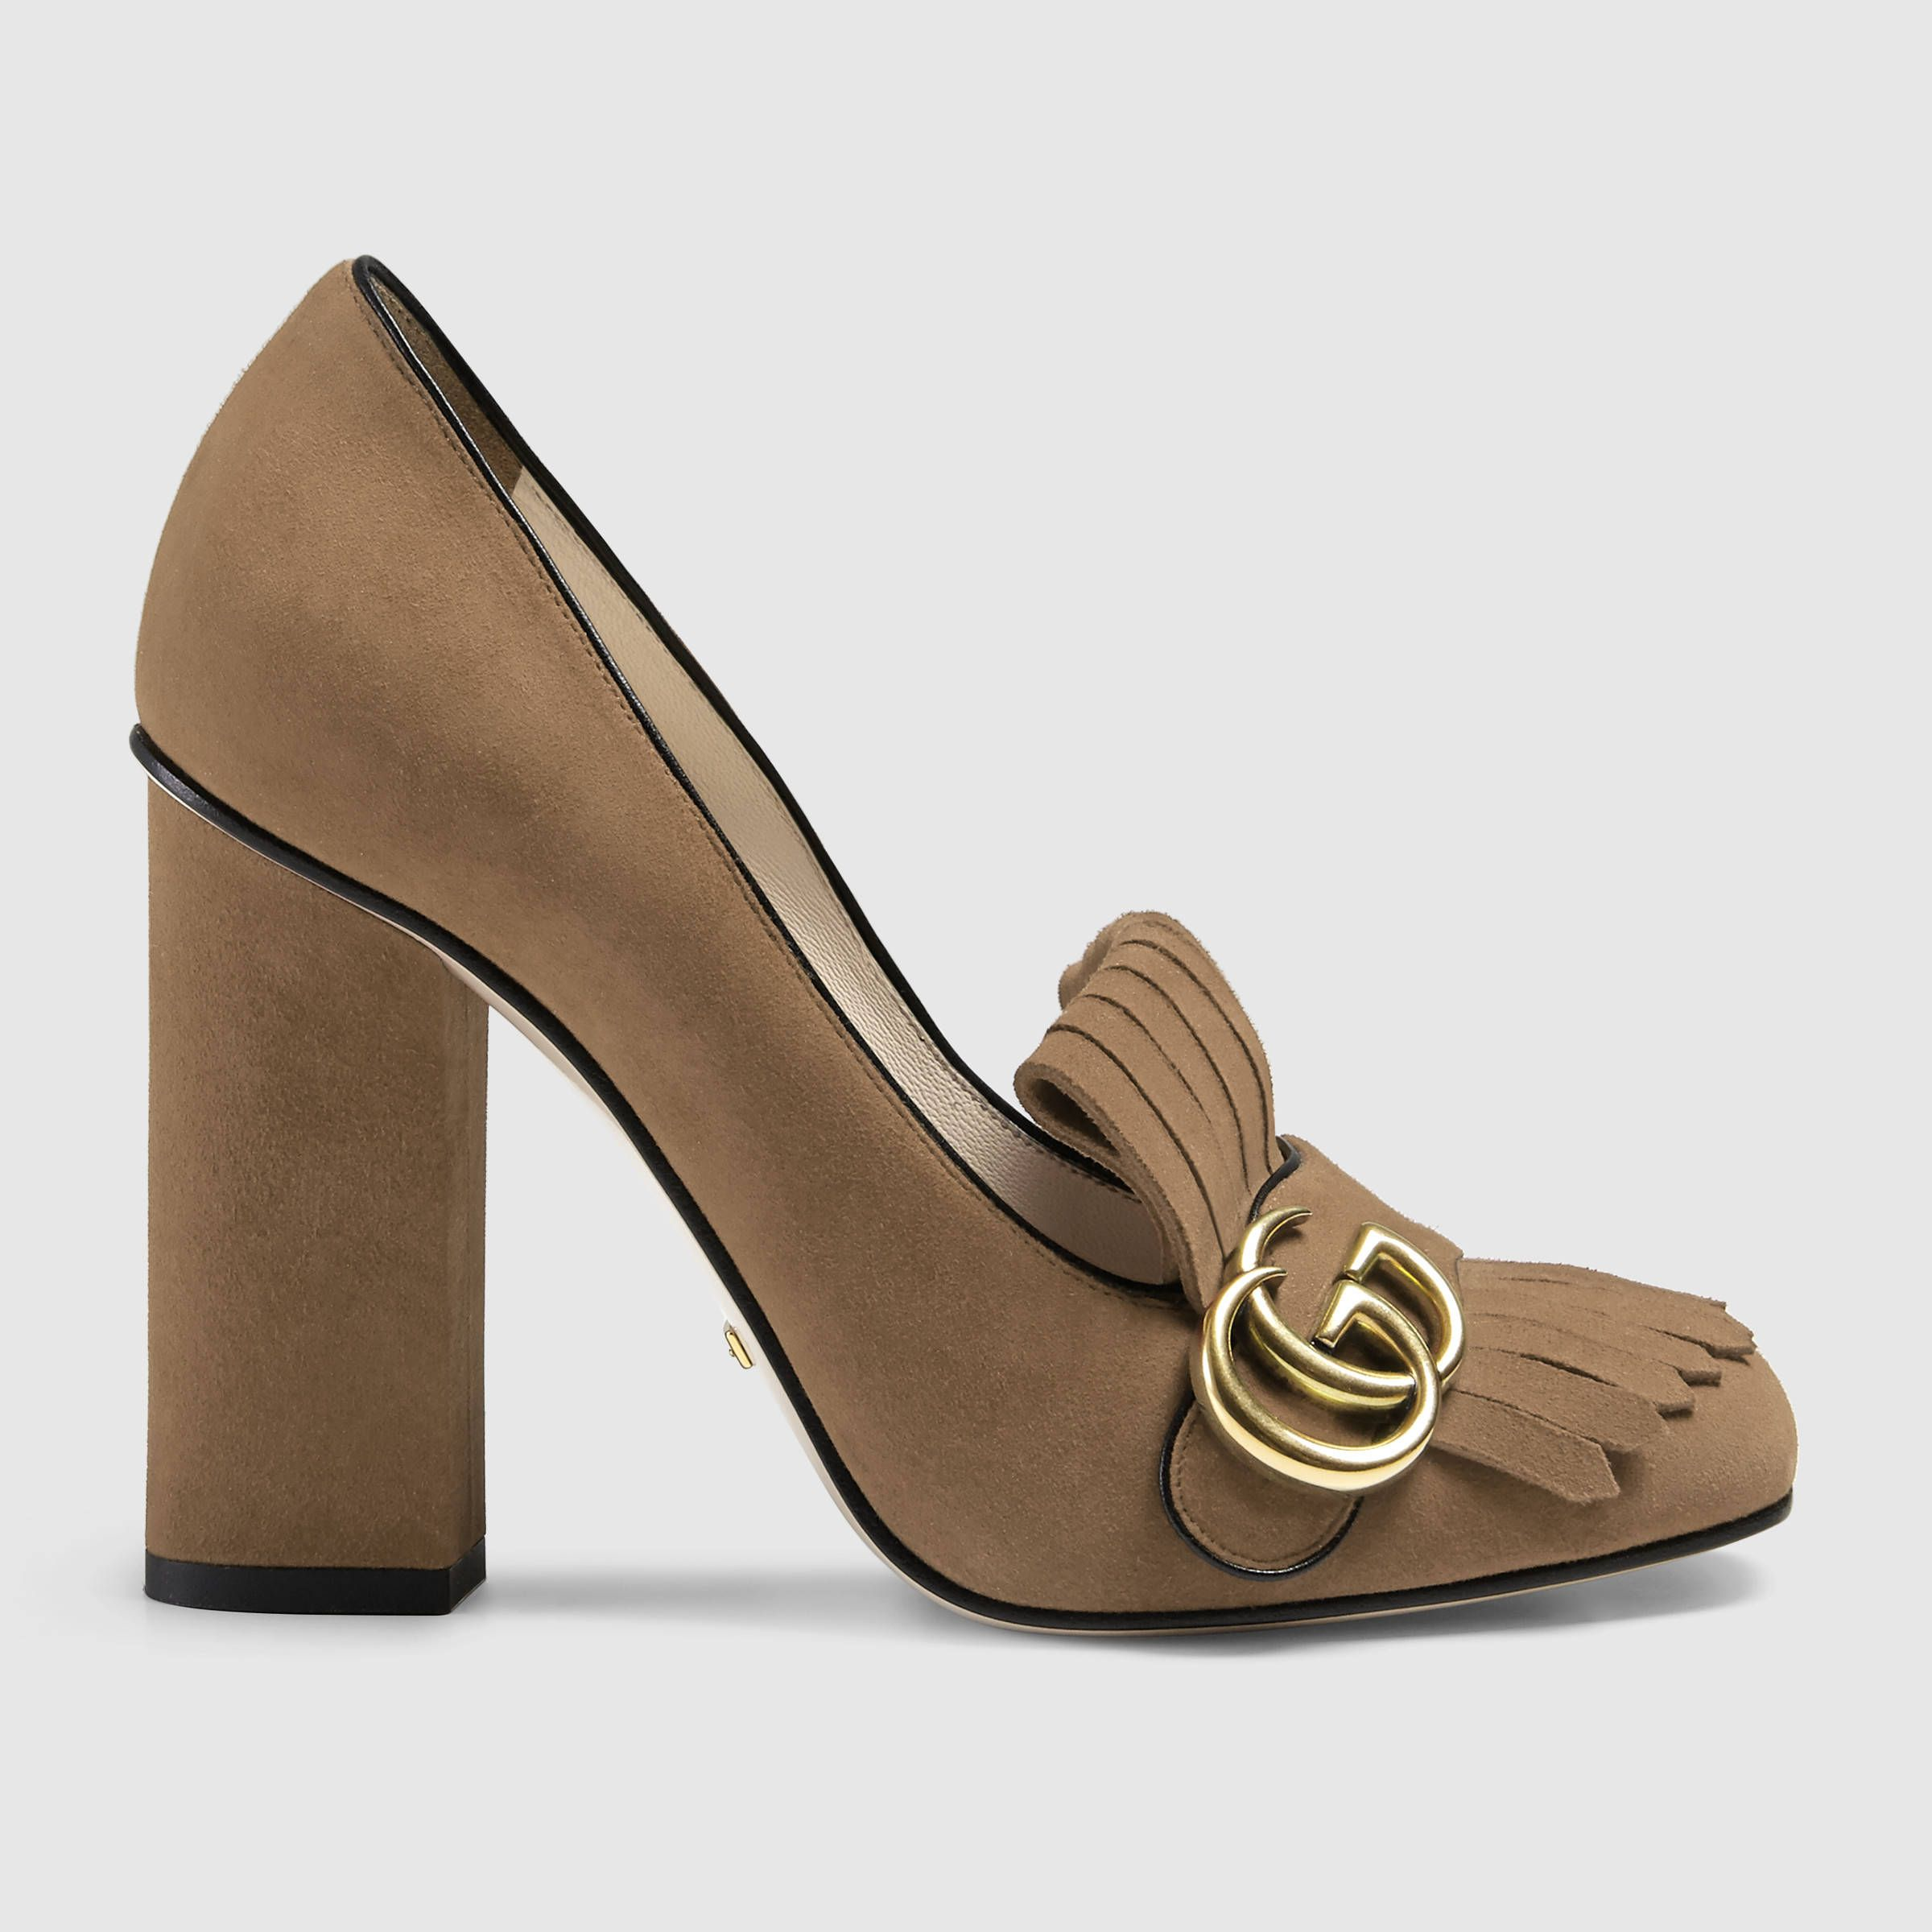 33405bbbe1c Gucci Marmont Suede Pump